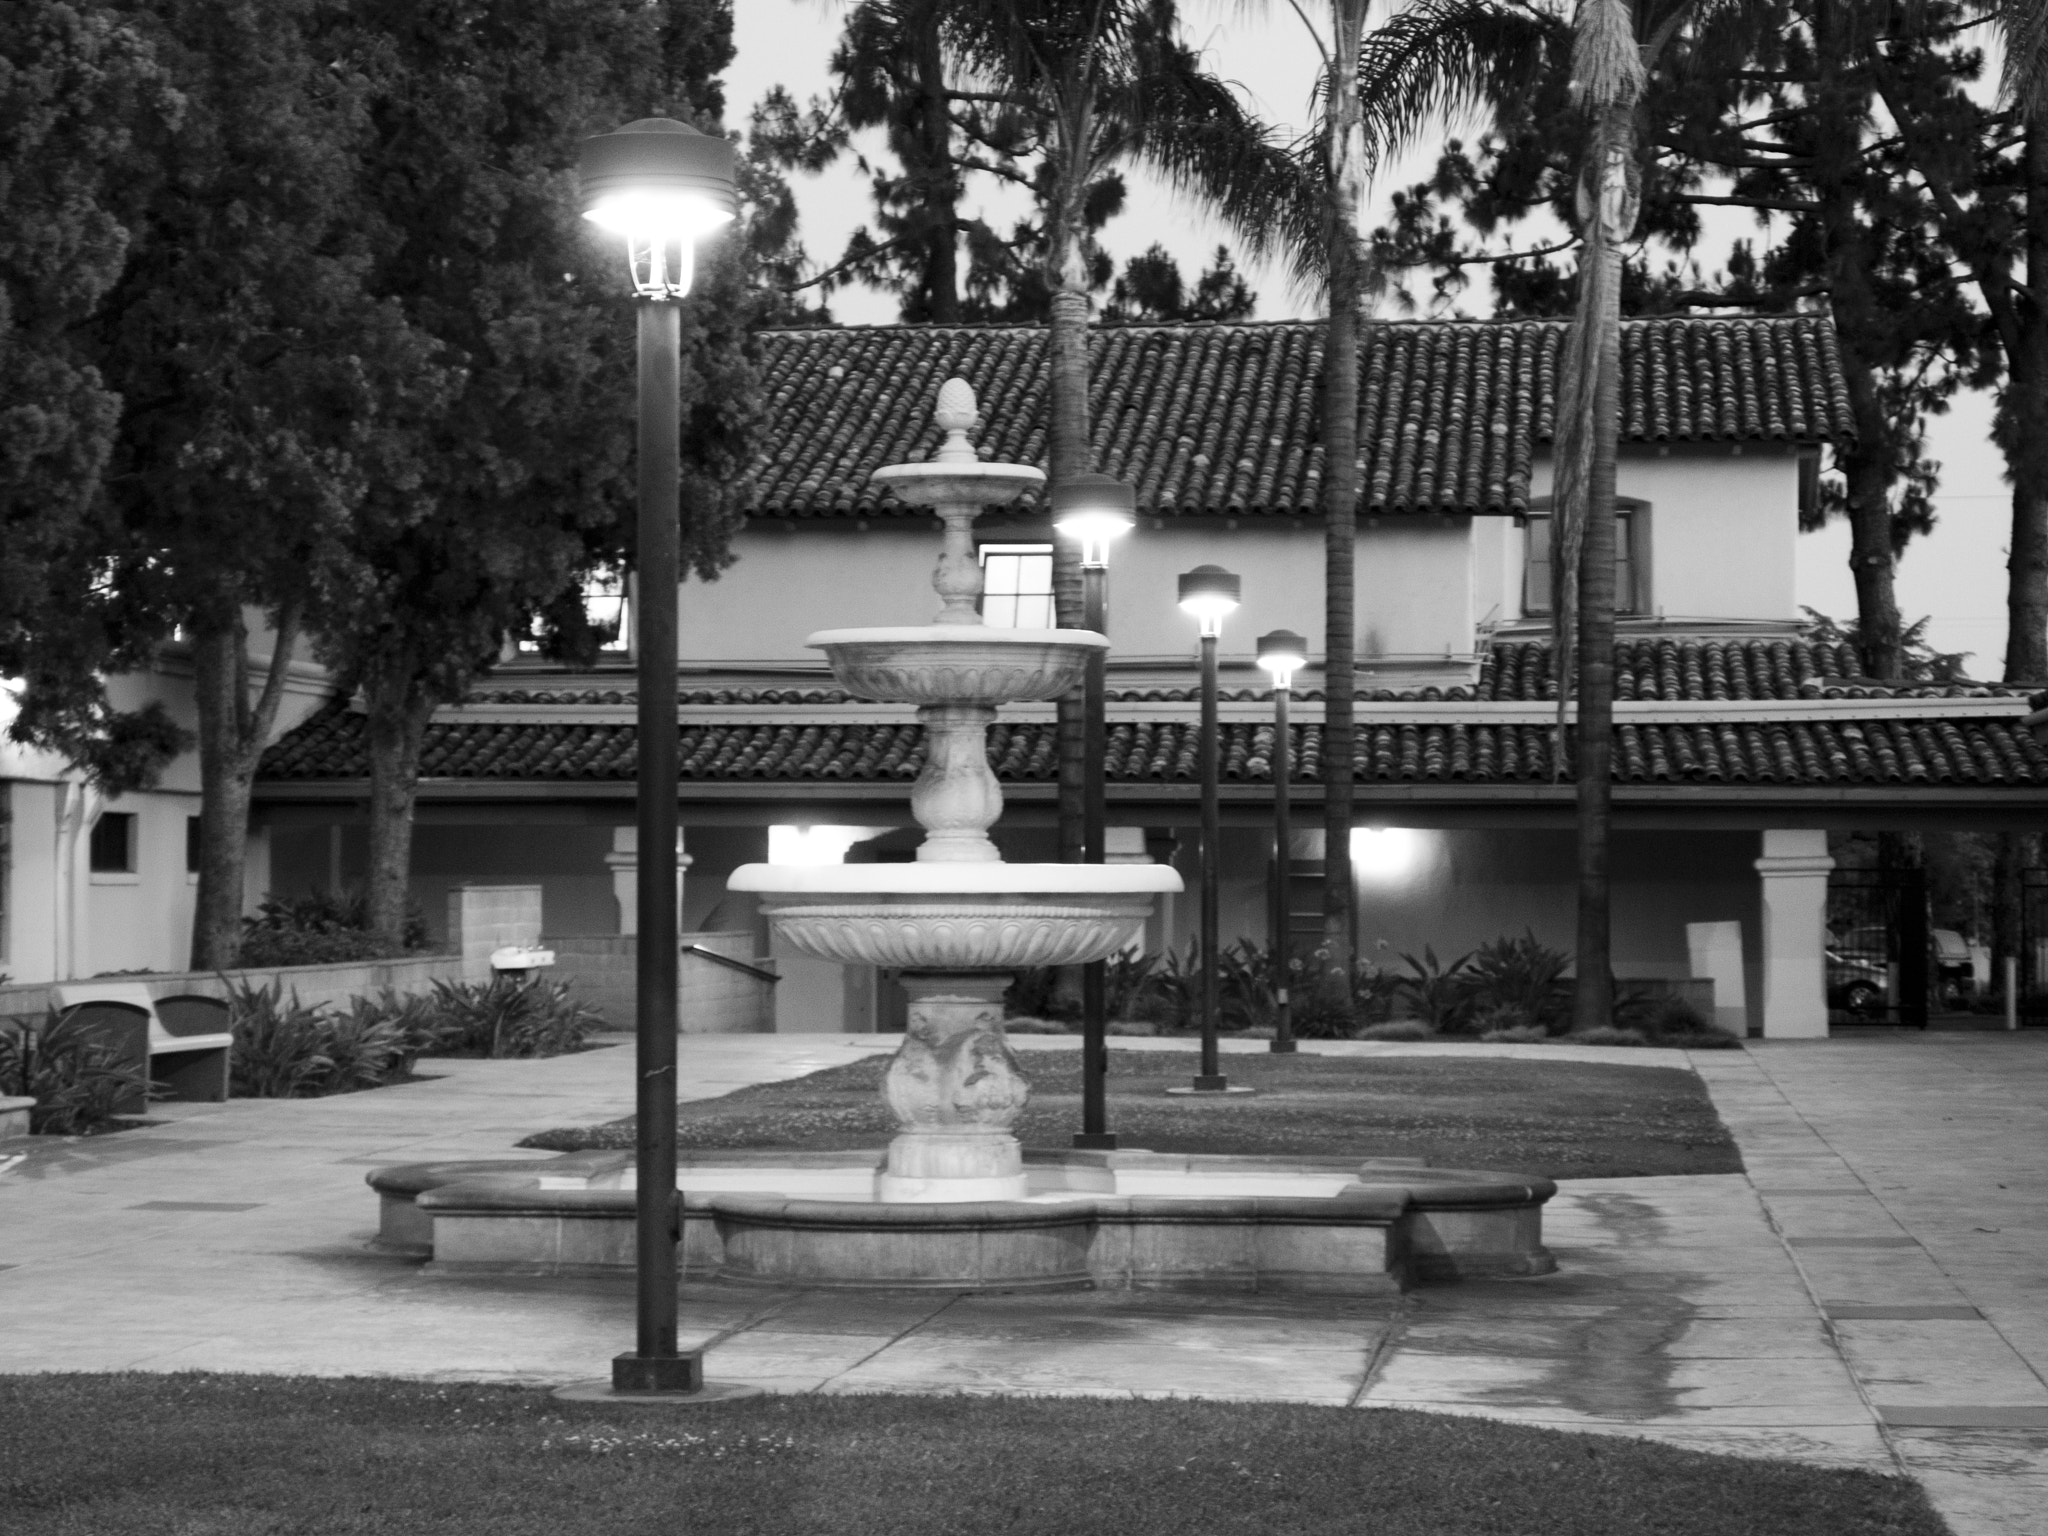 Photograph Courtyard Fountain by David Liao on 500px